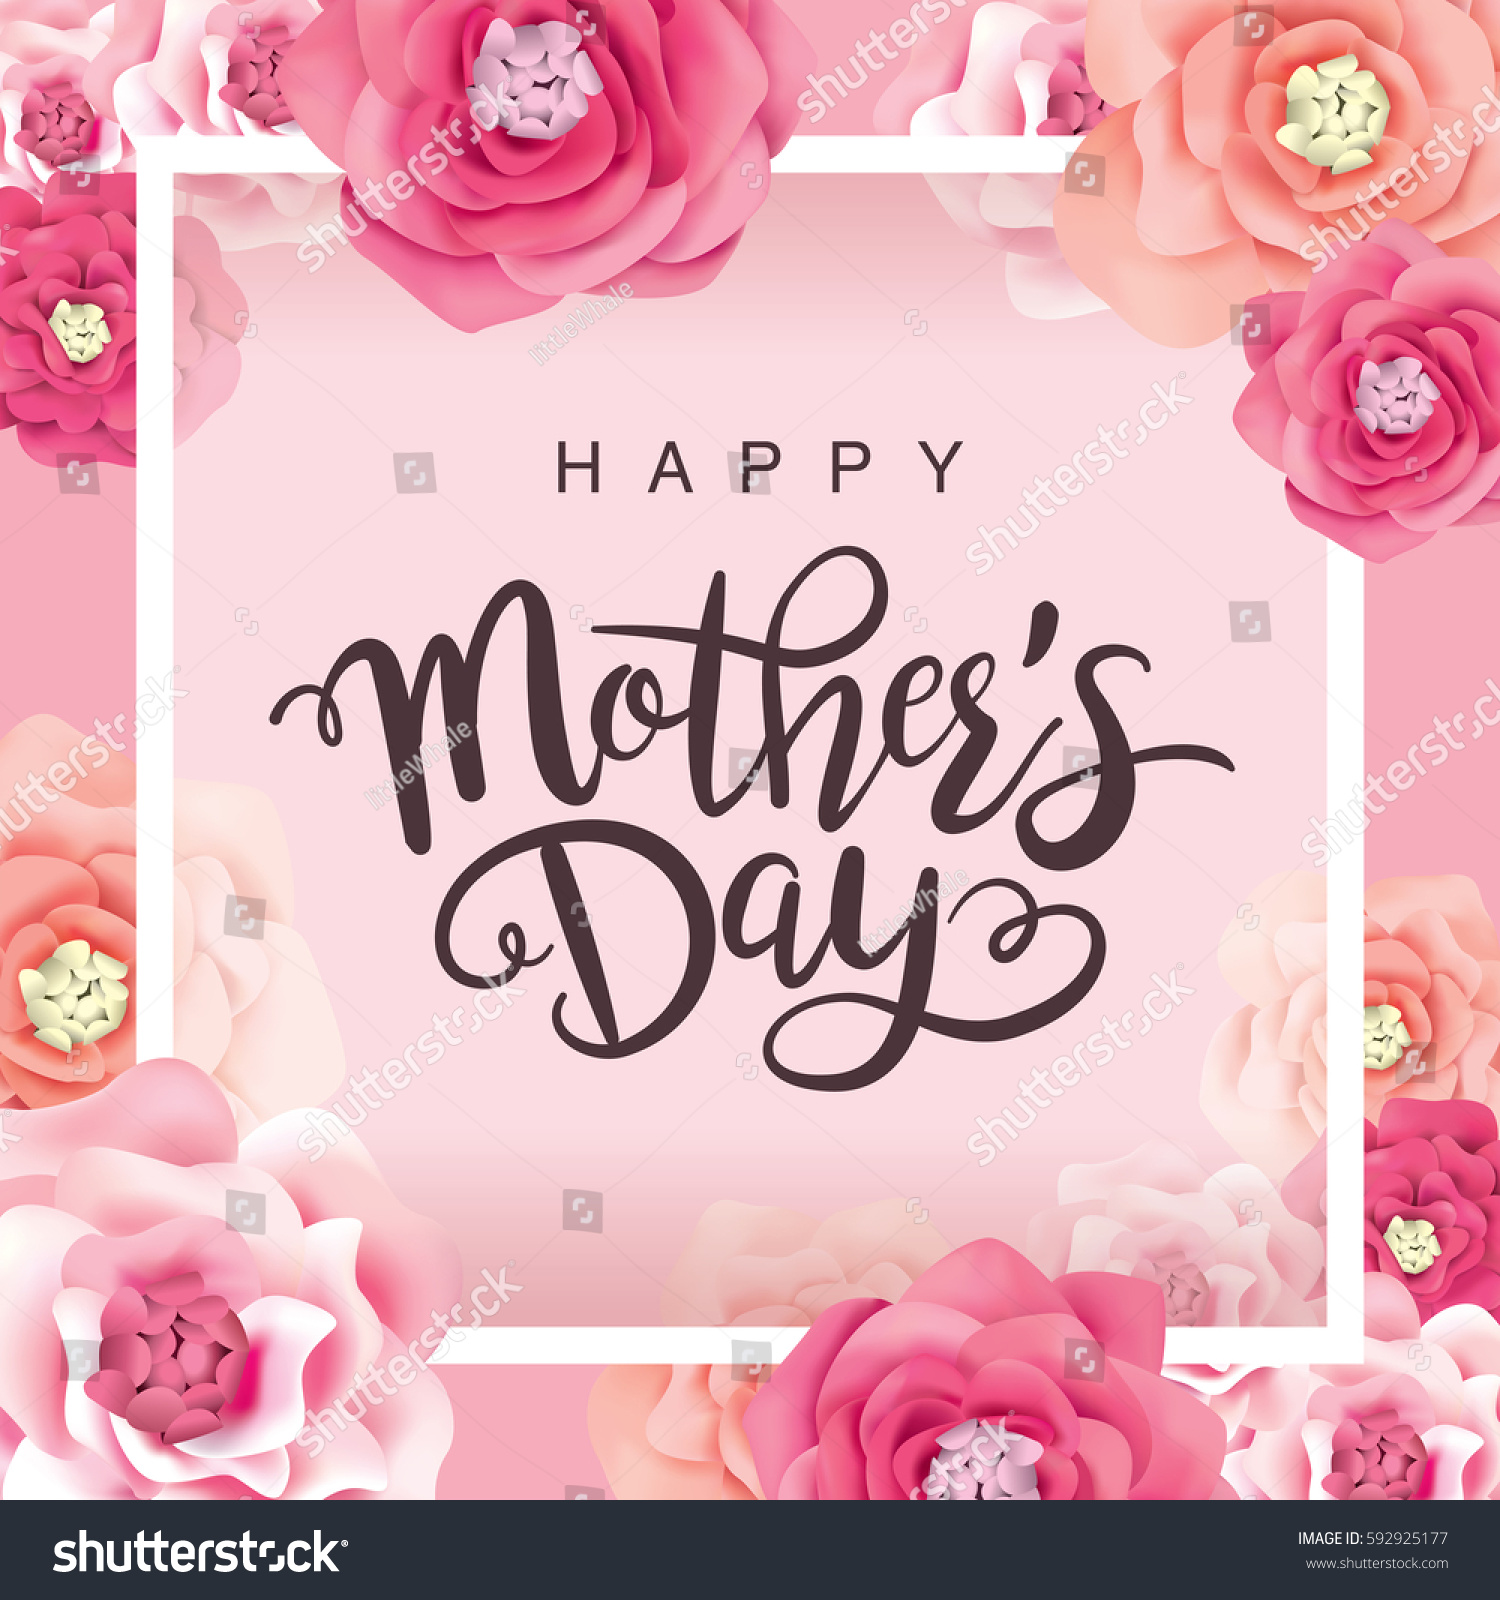 Mother's day greeting card with flowers background #592925177